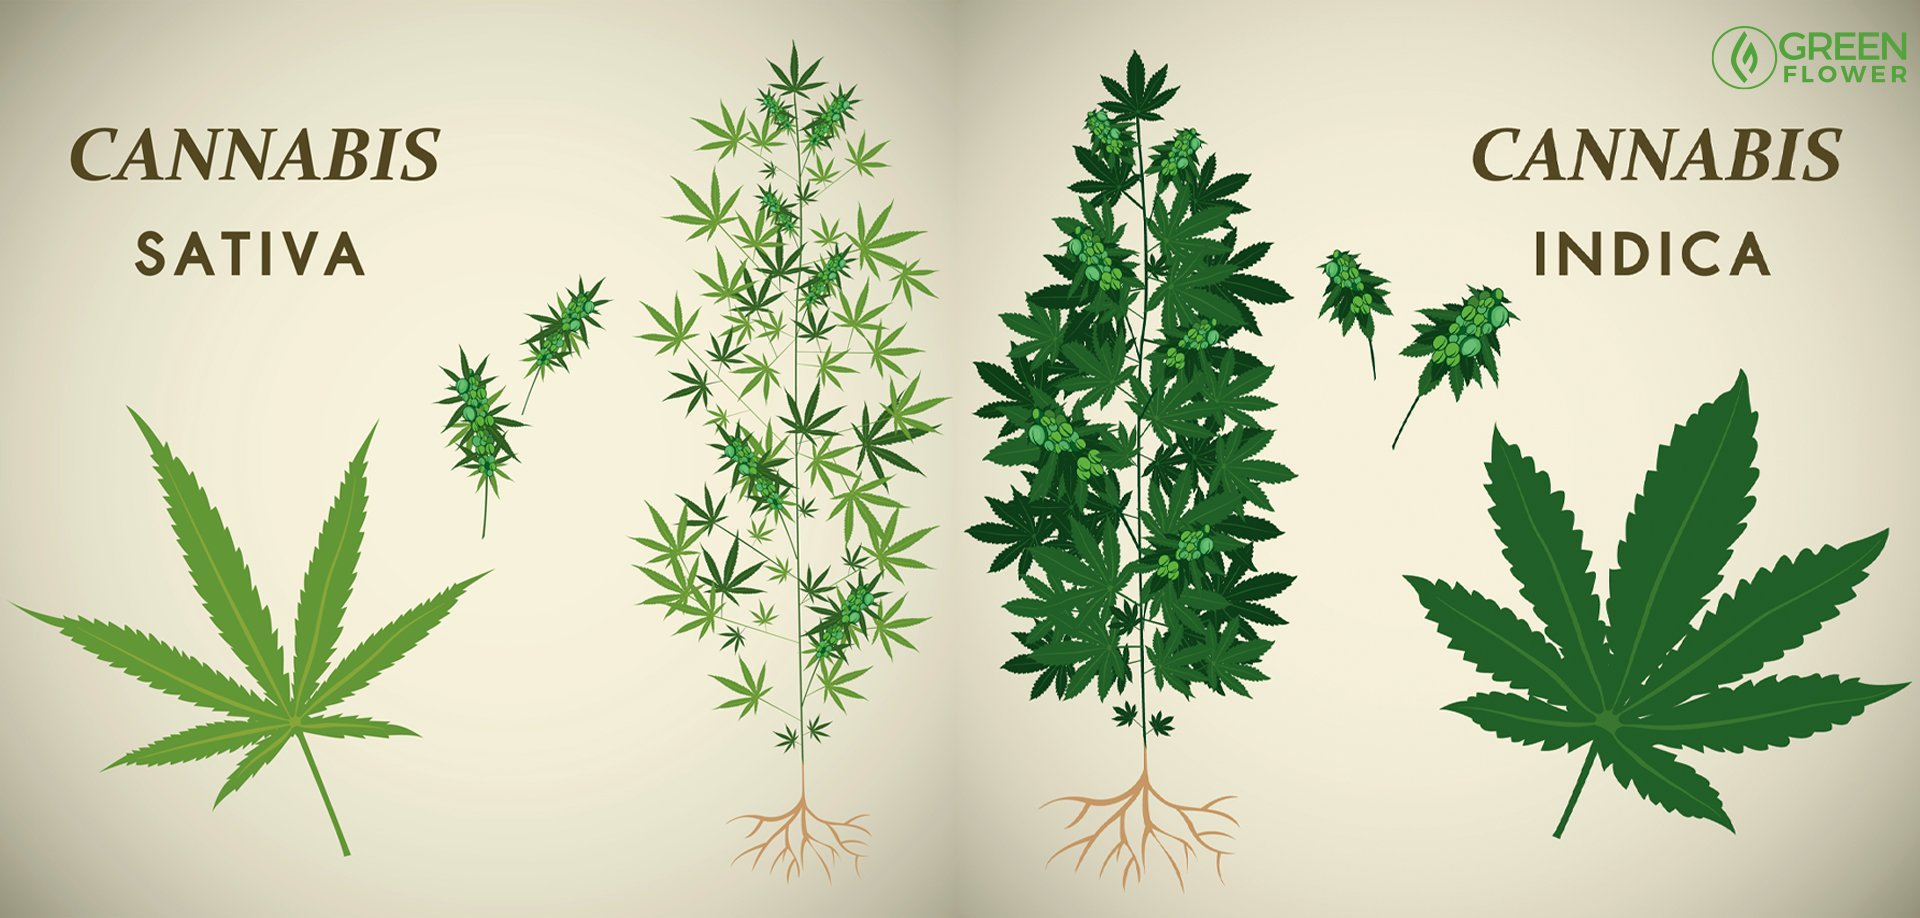 cannabis sativa plant (left) and cannabis indica plant (right)